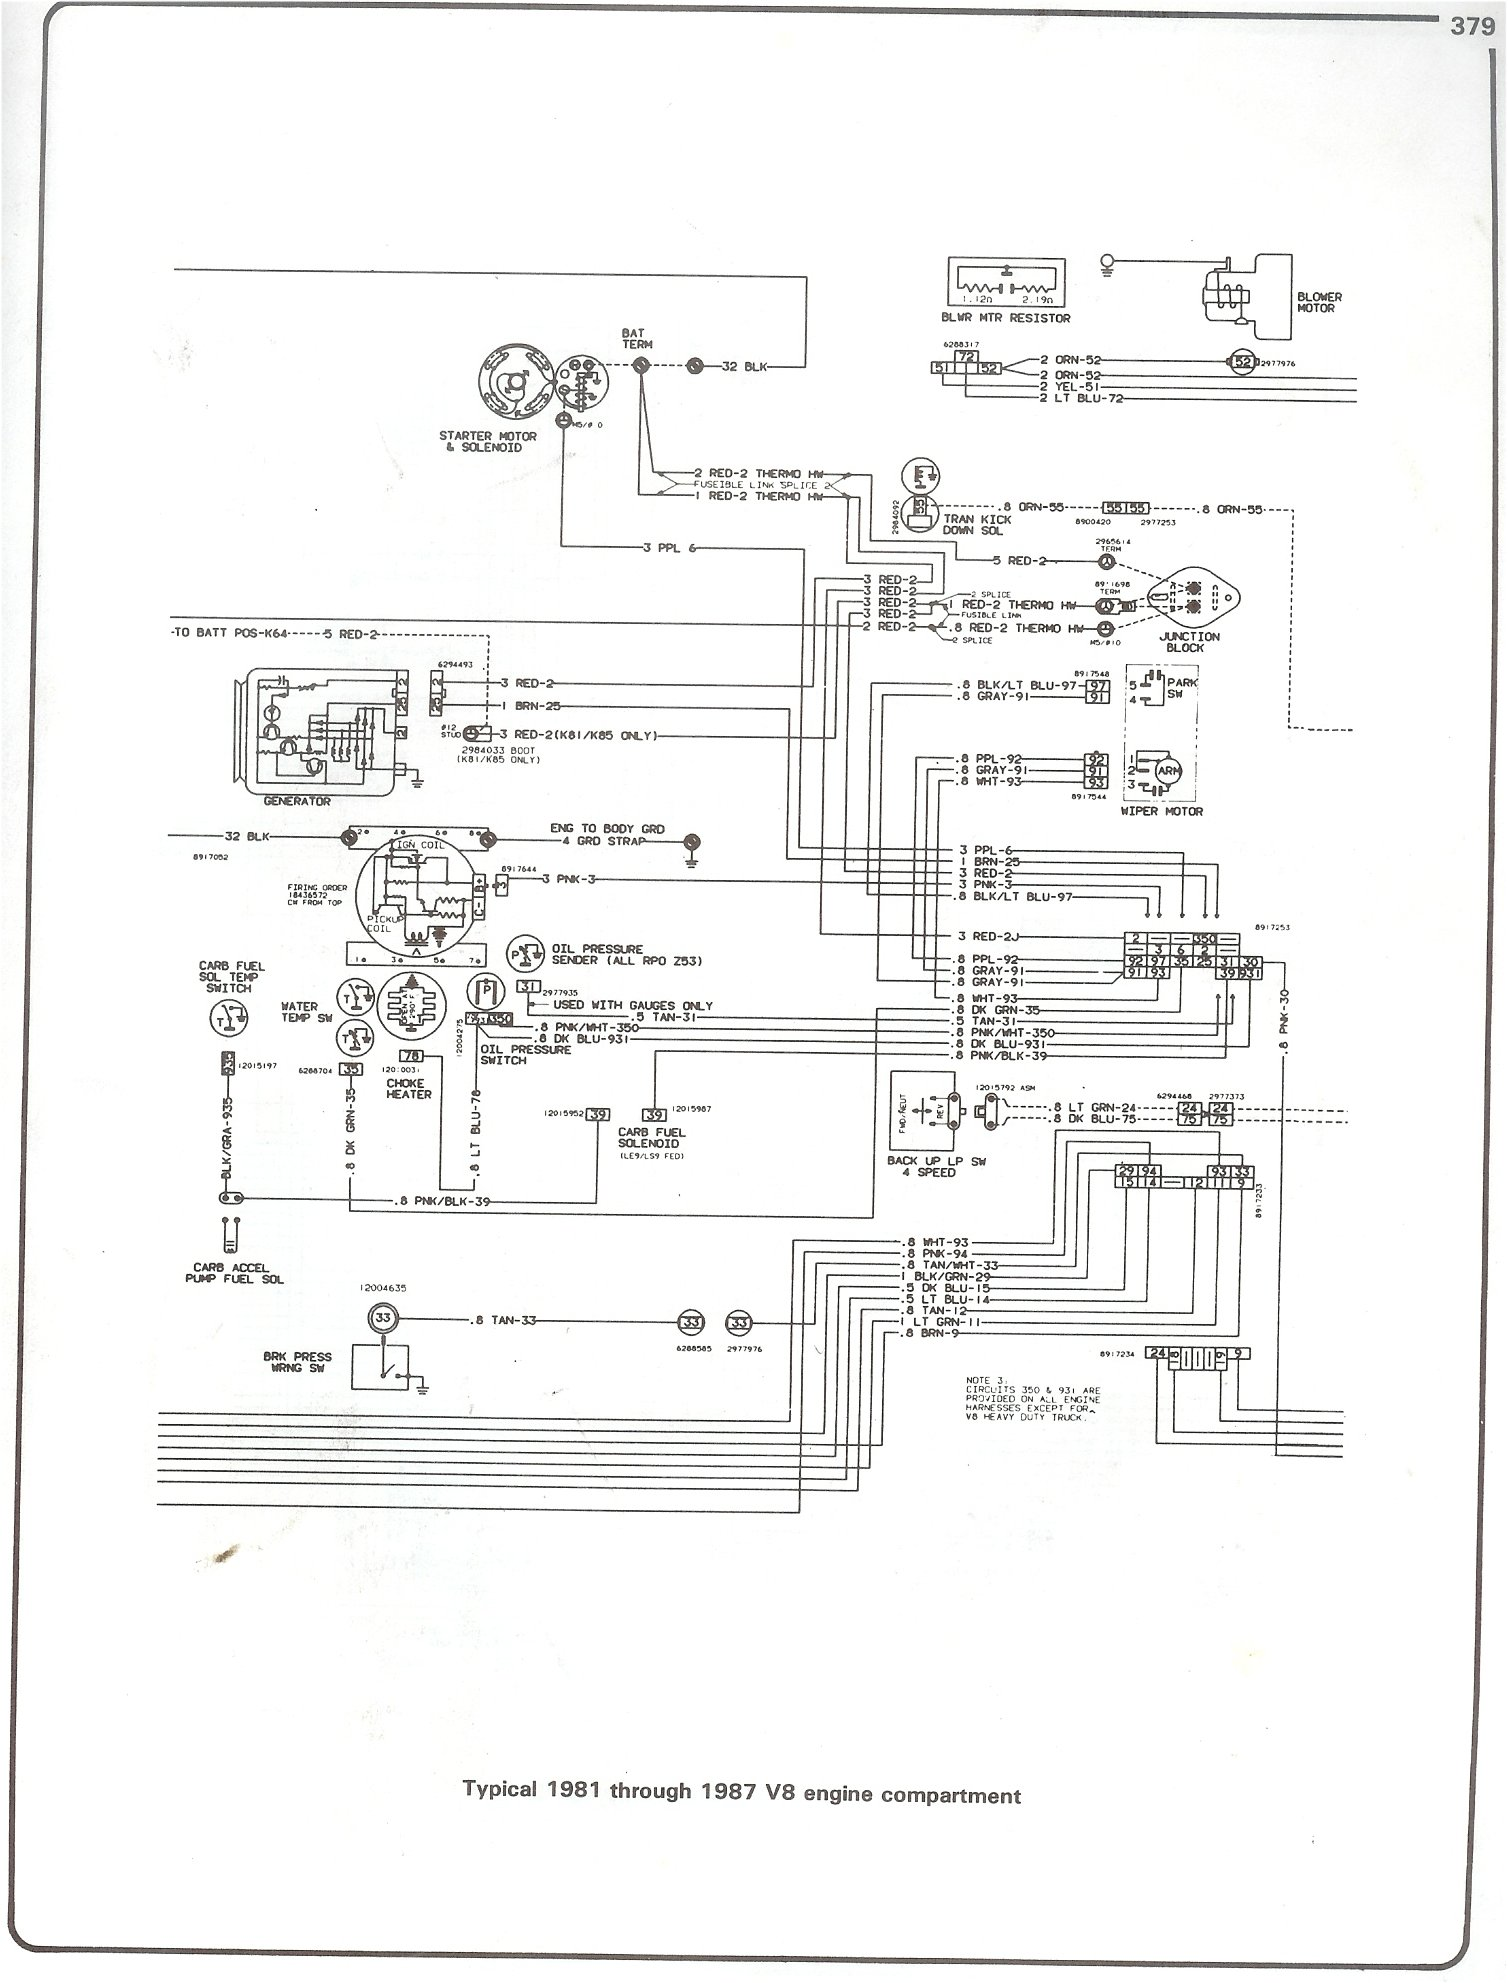 82 K10 Ignition Wiring Diagram Everything About 1997 Chevy Complete 73 87 Diagrams Rh Forum 87chevytrucks Com Switch Ford